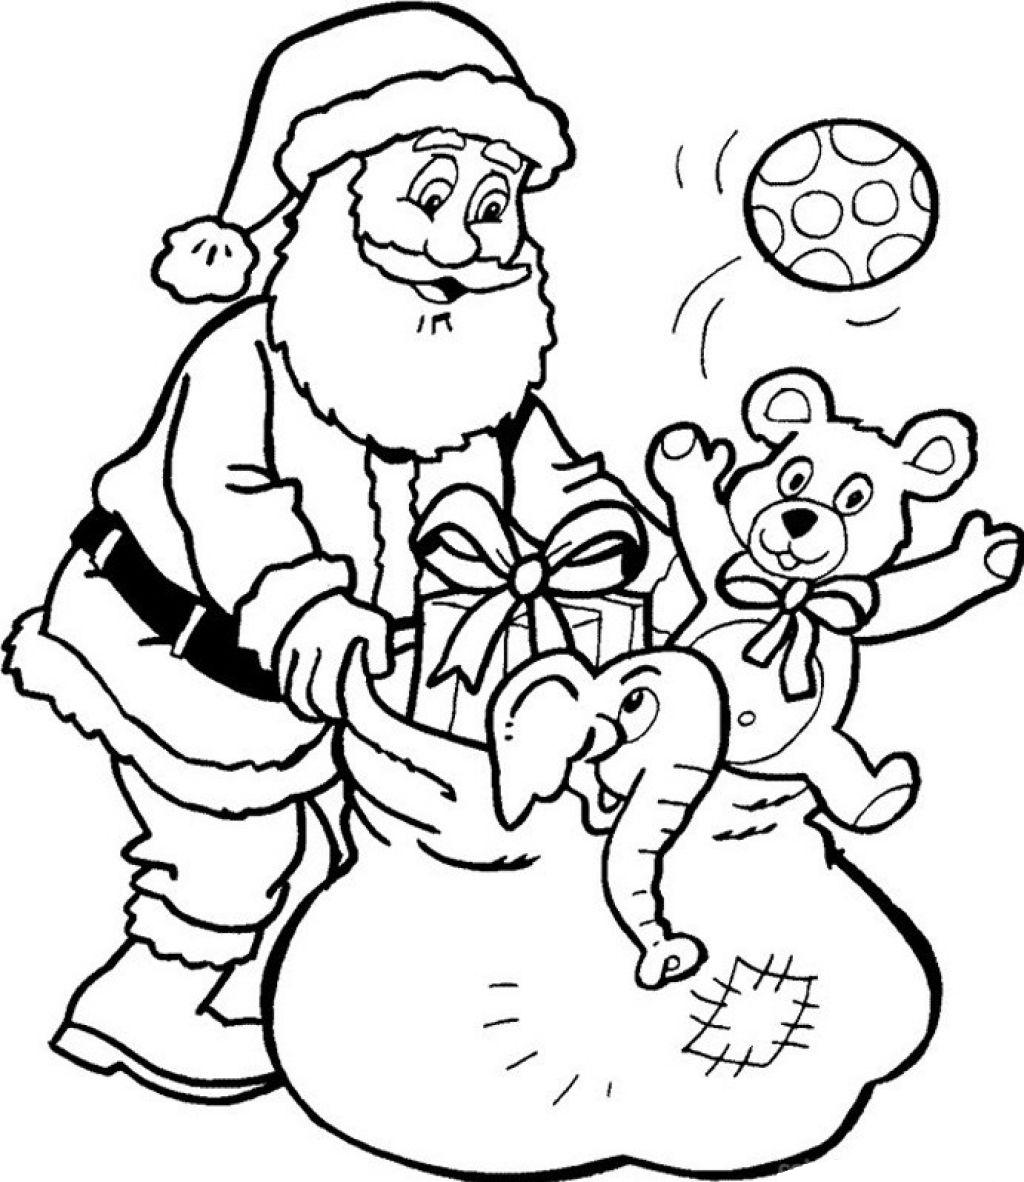 father christmas coloring pages - photo#7